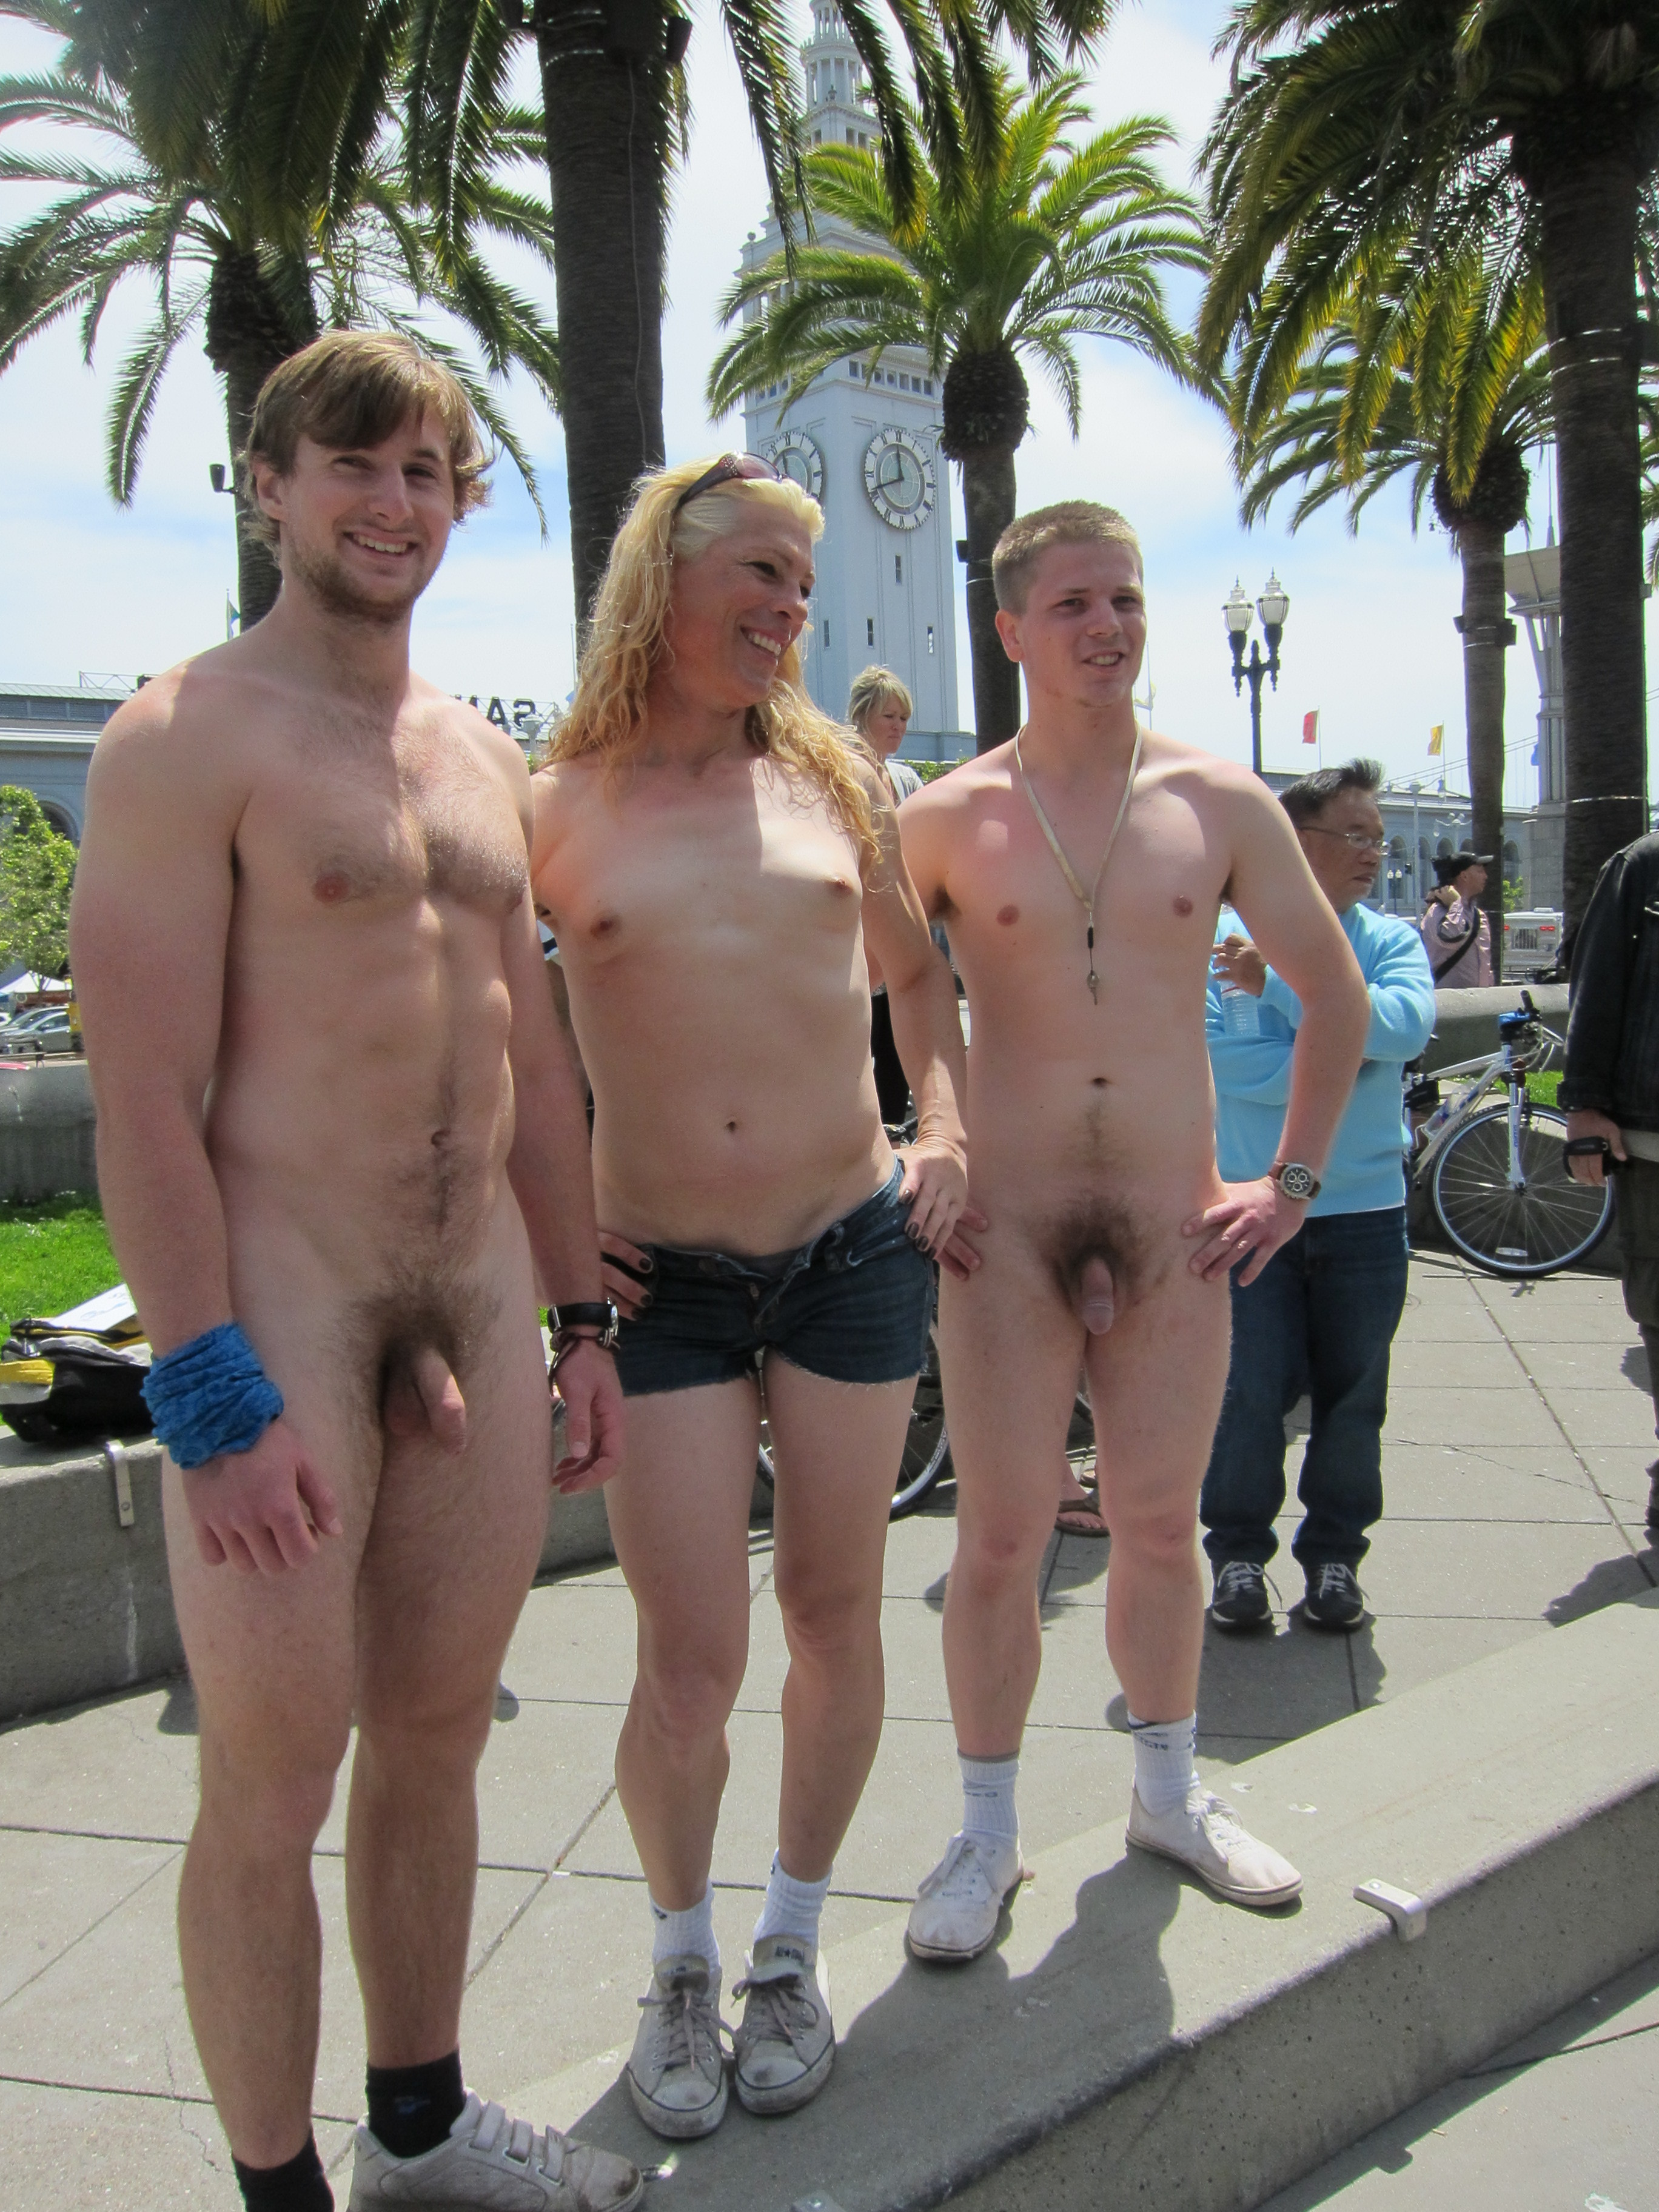 Tiny penis nude in public, dad and girl virgin pics seks